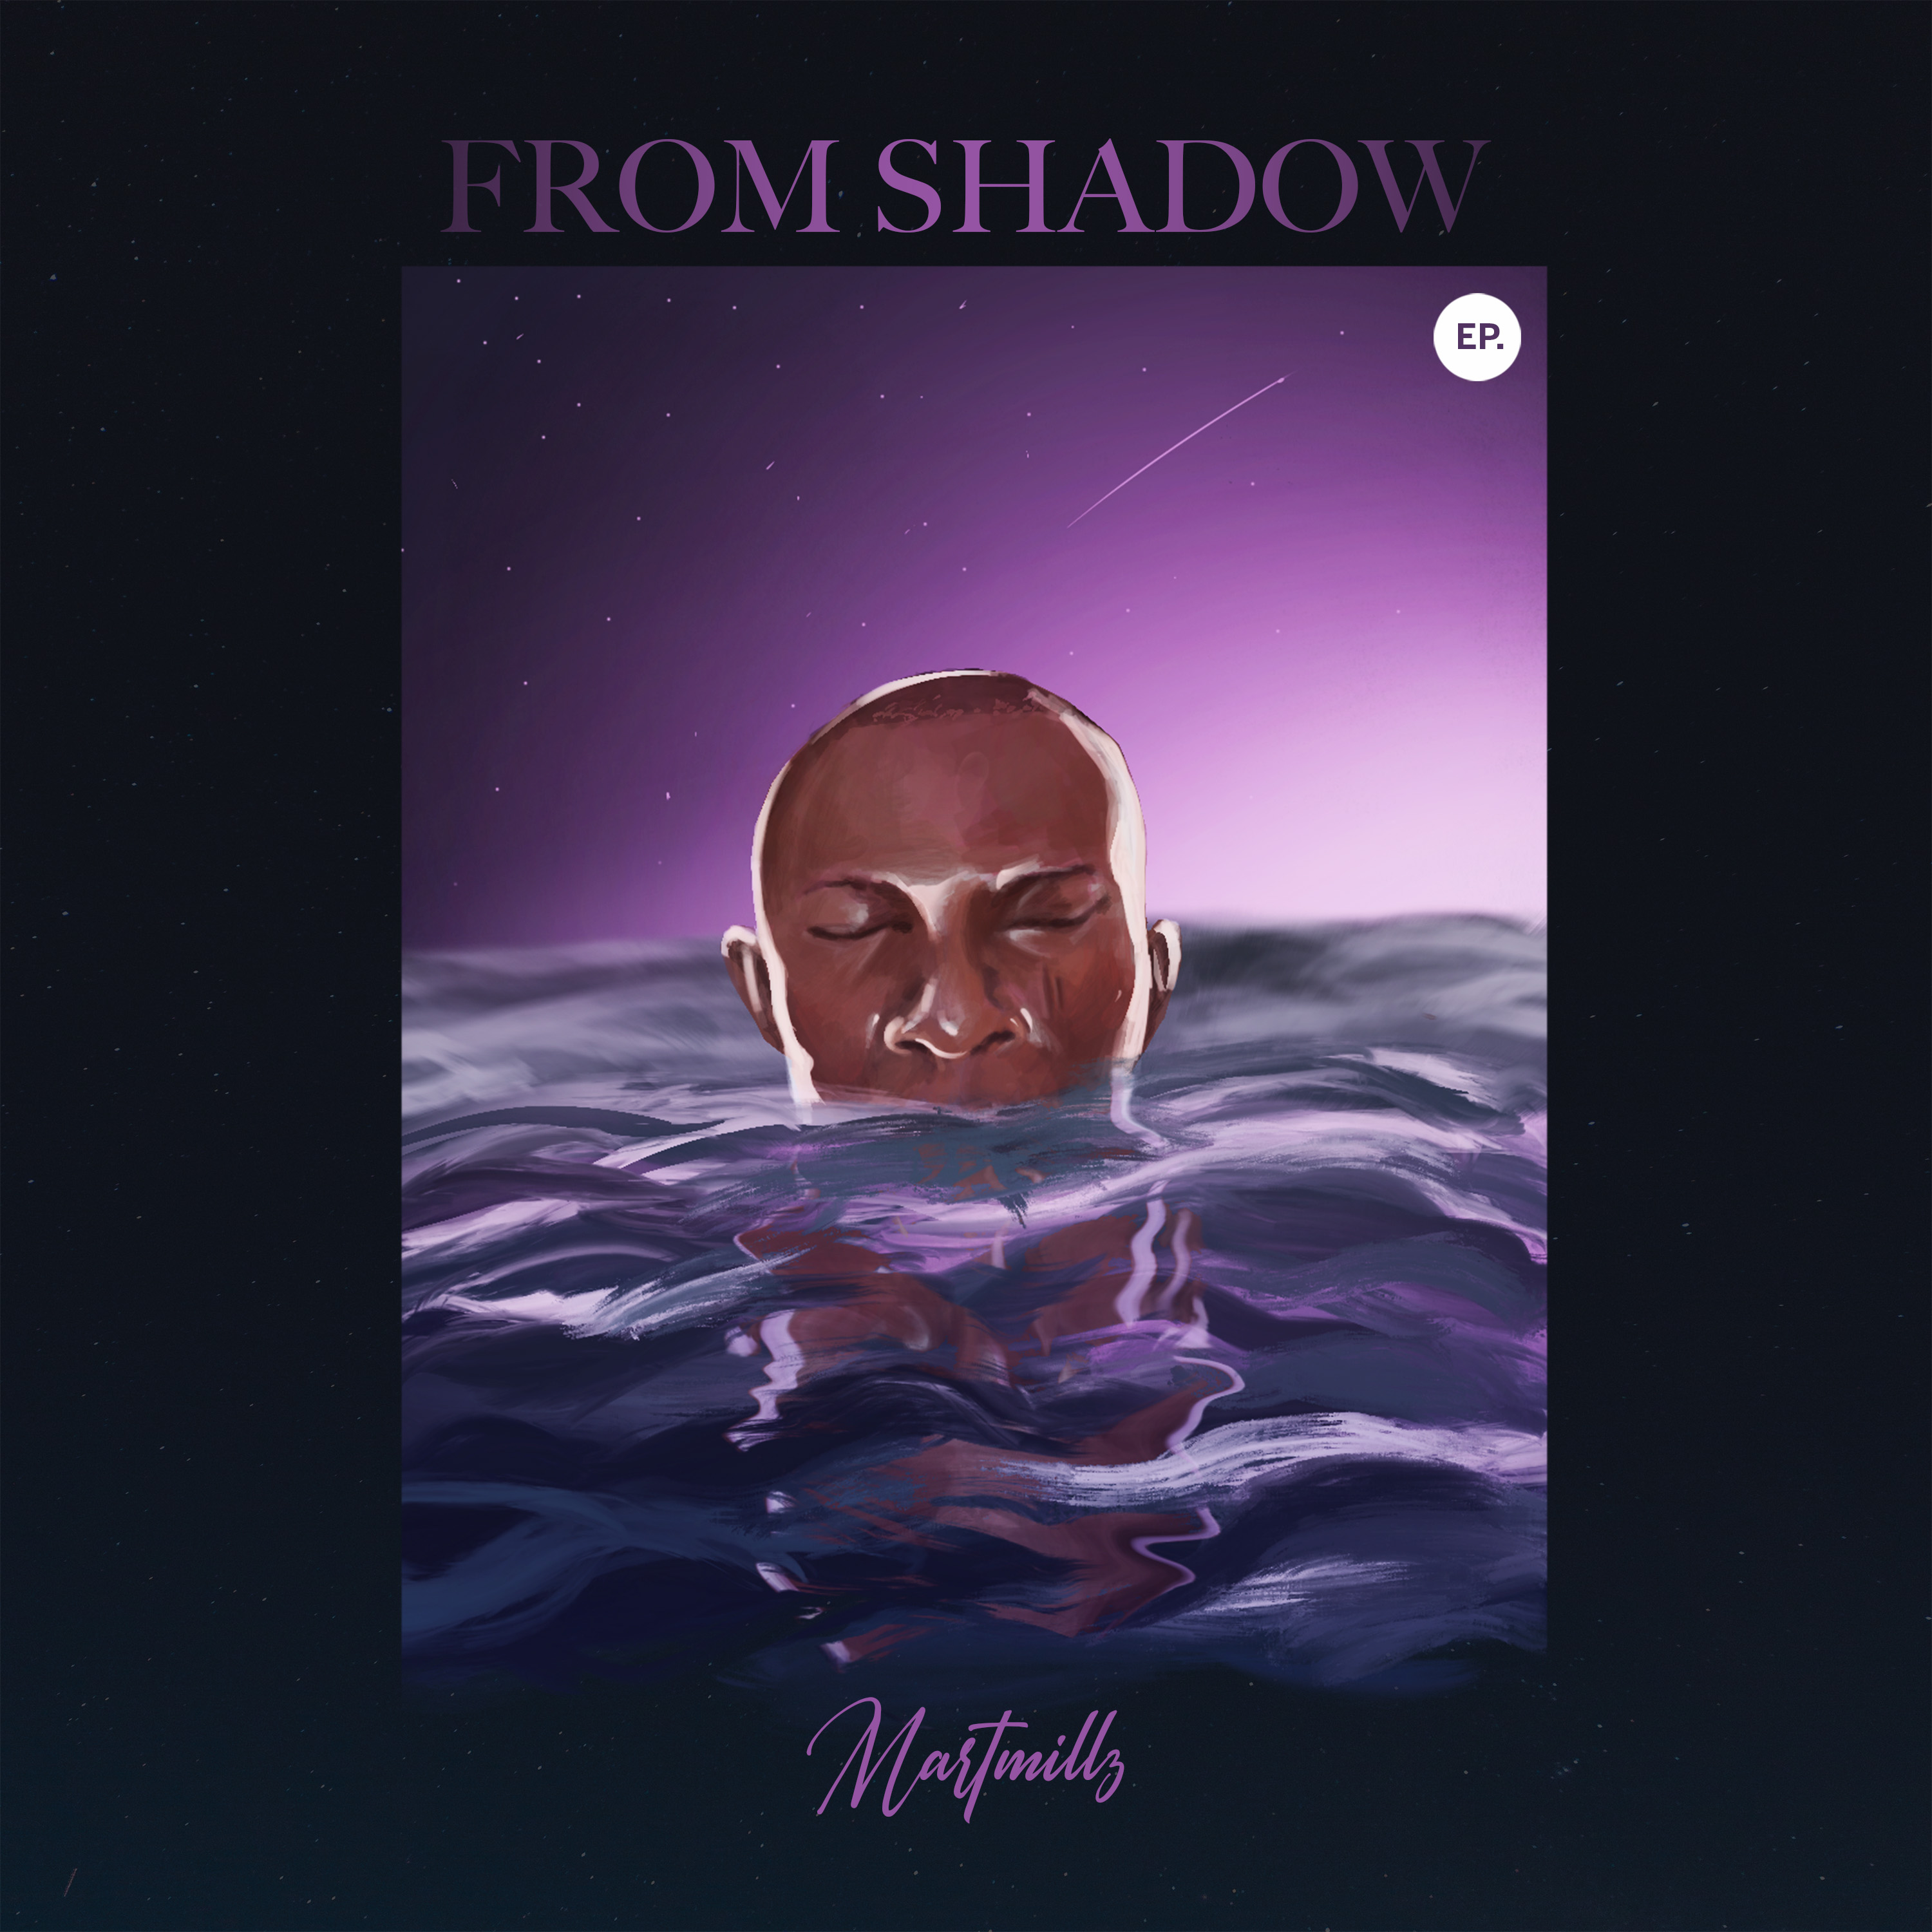 FROM SHADOW [EP] Image